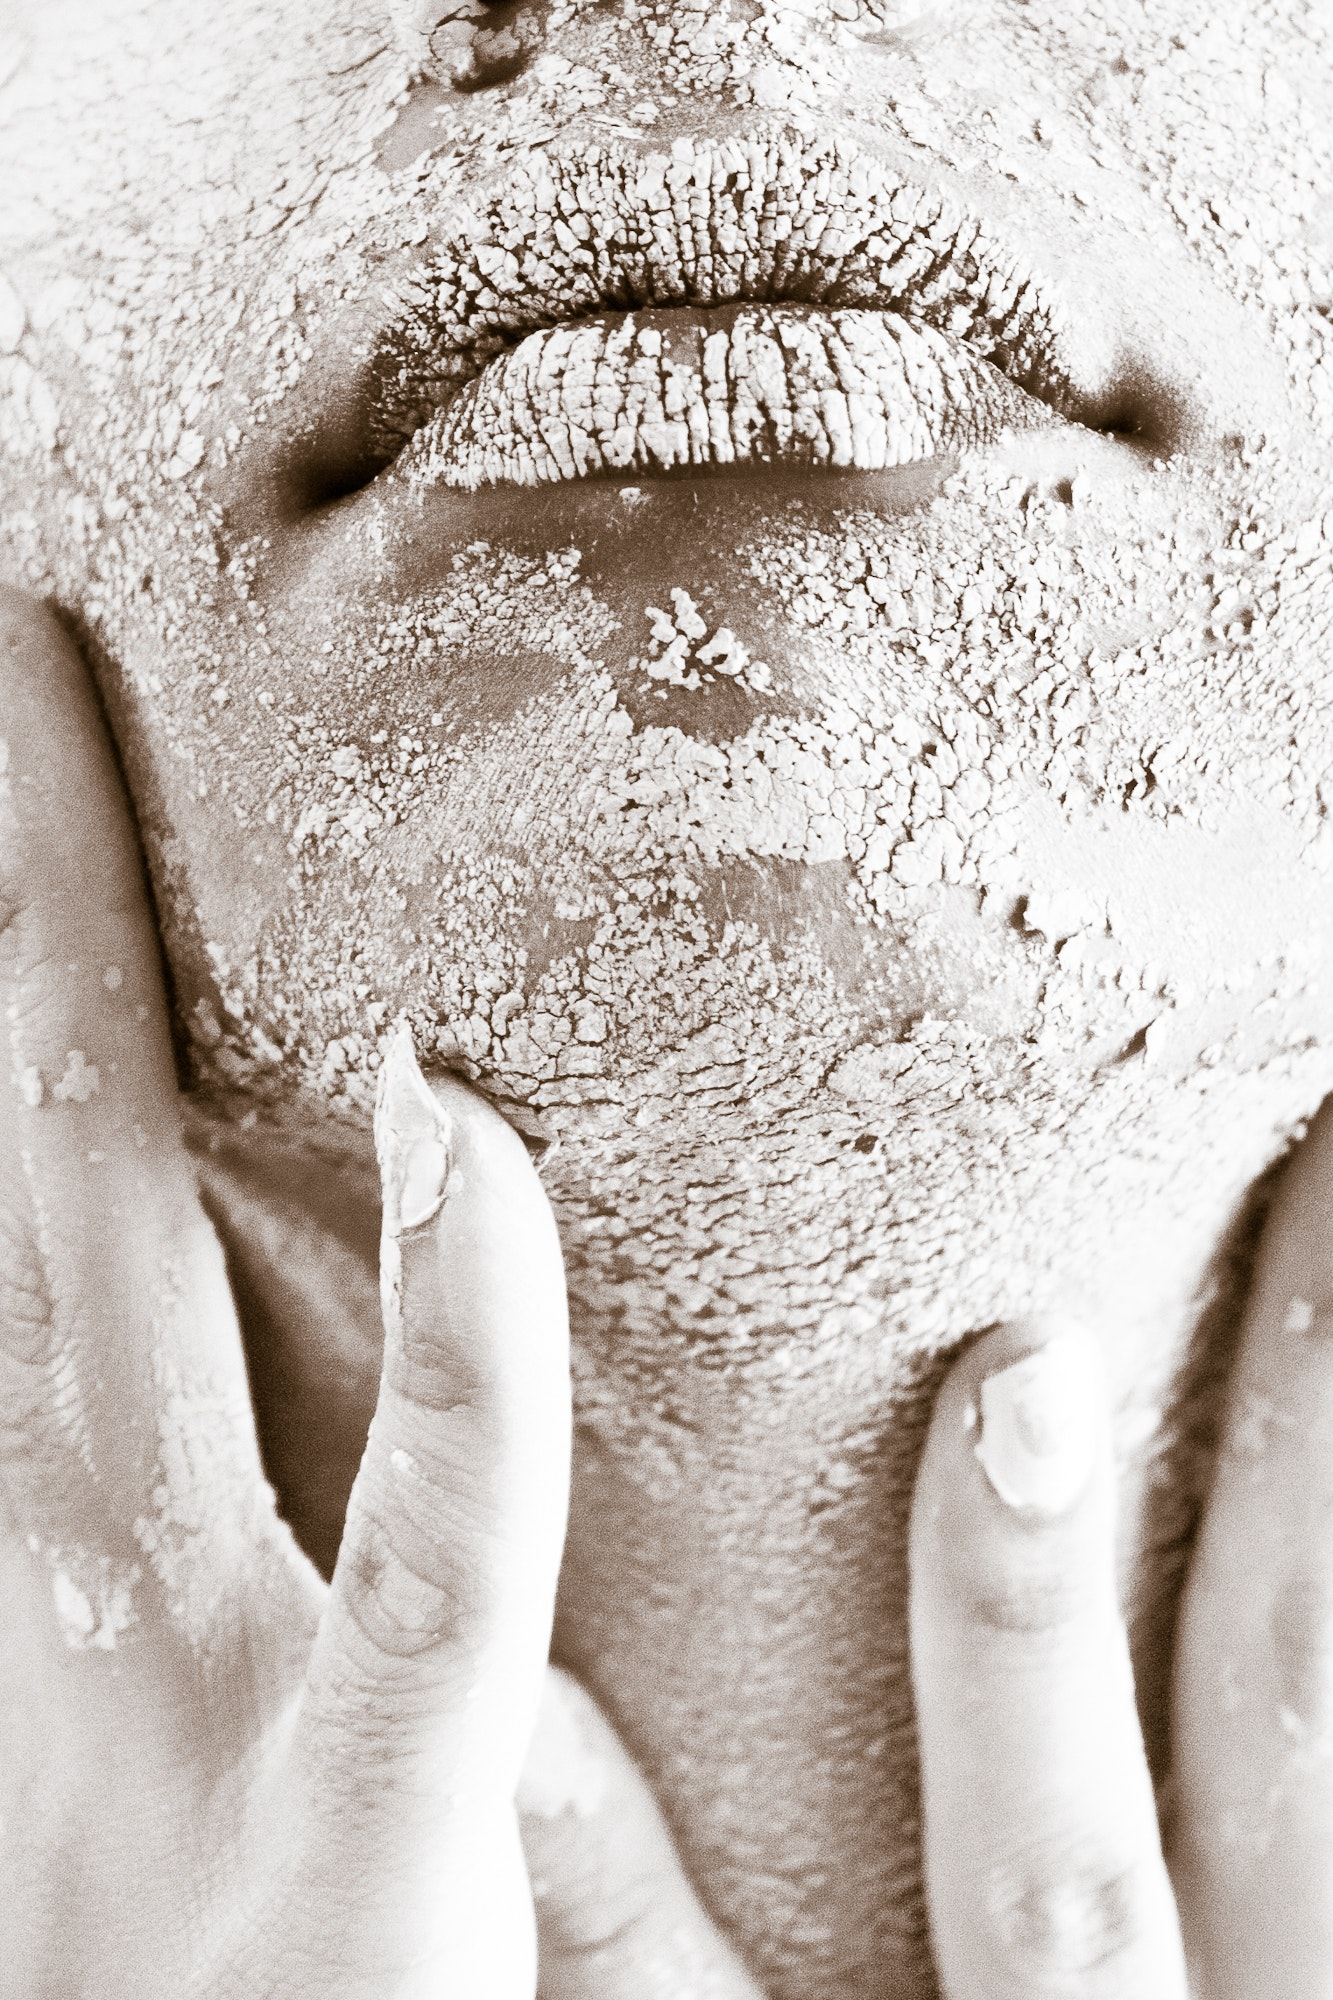 dirty-face-female-682501 (1)